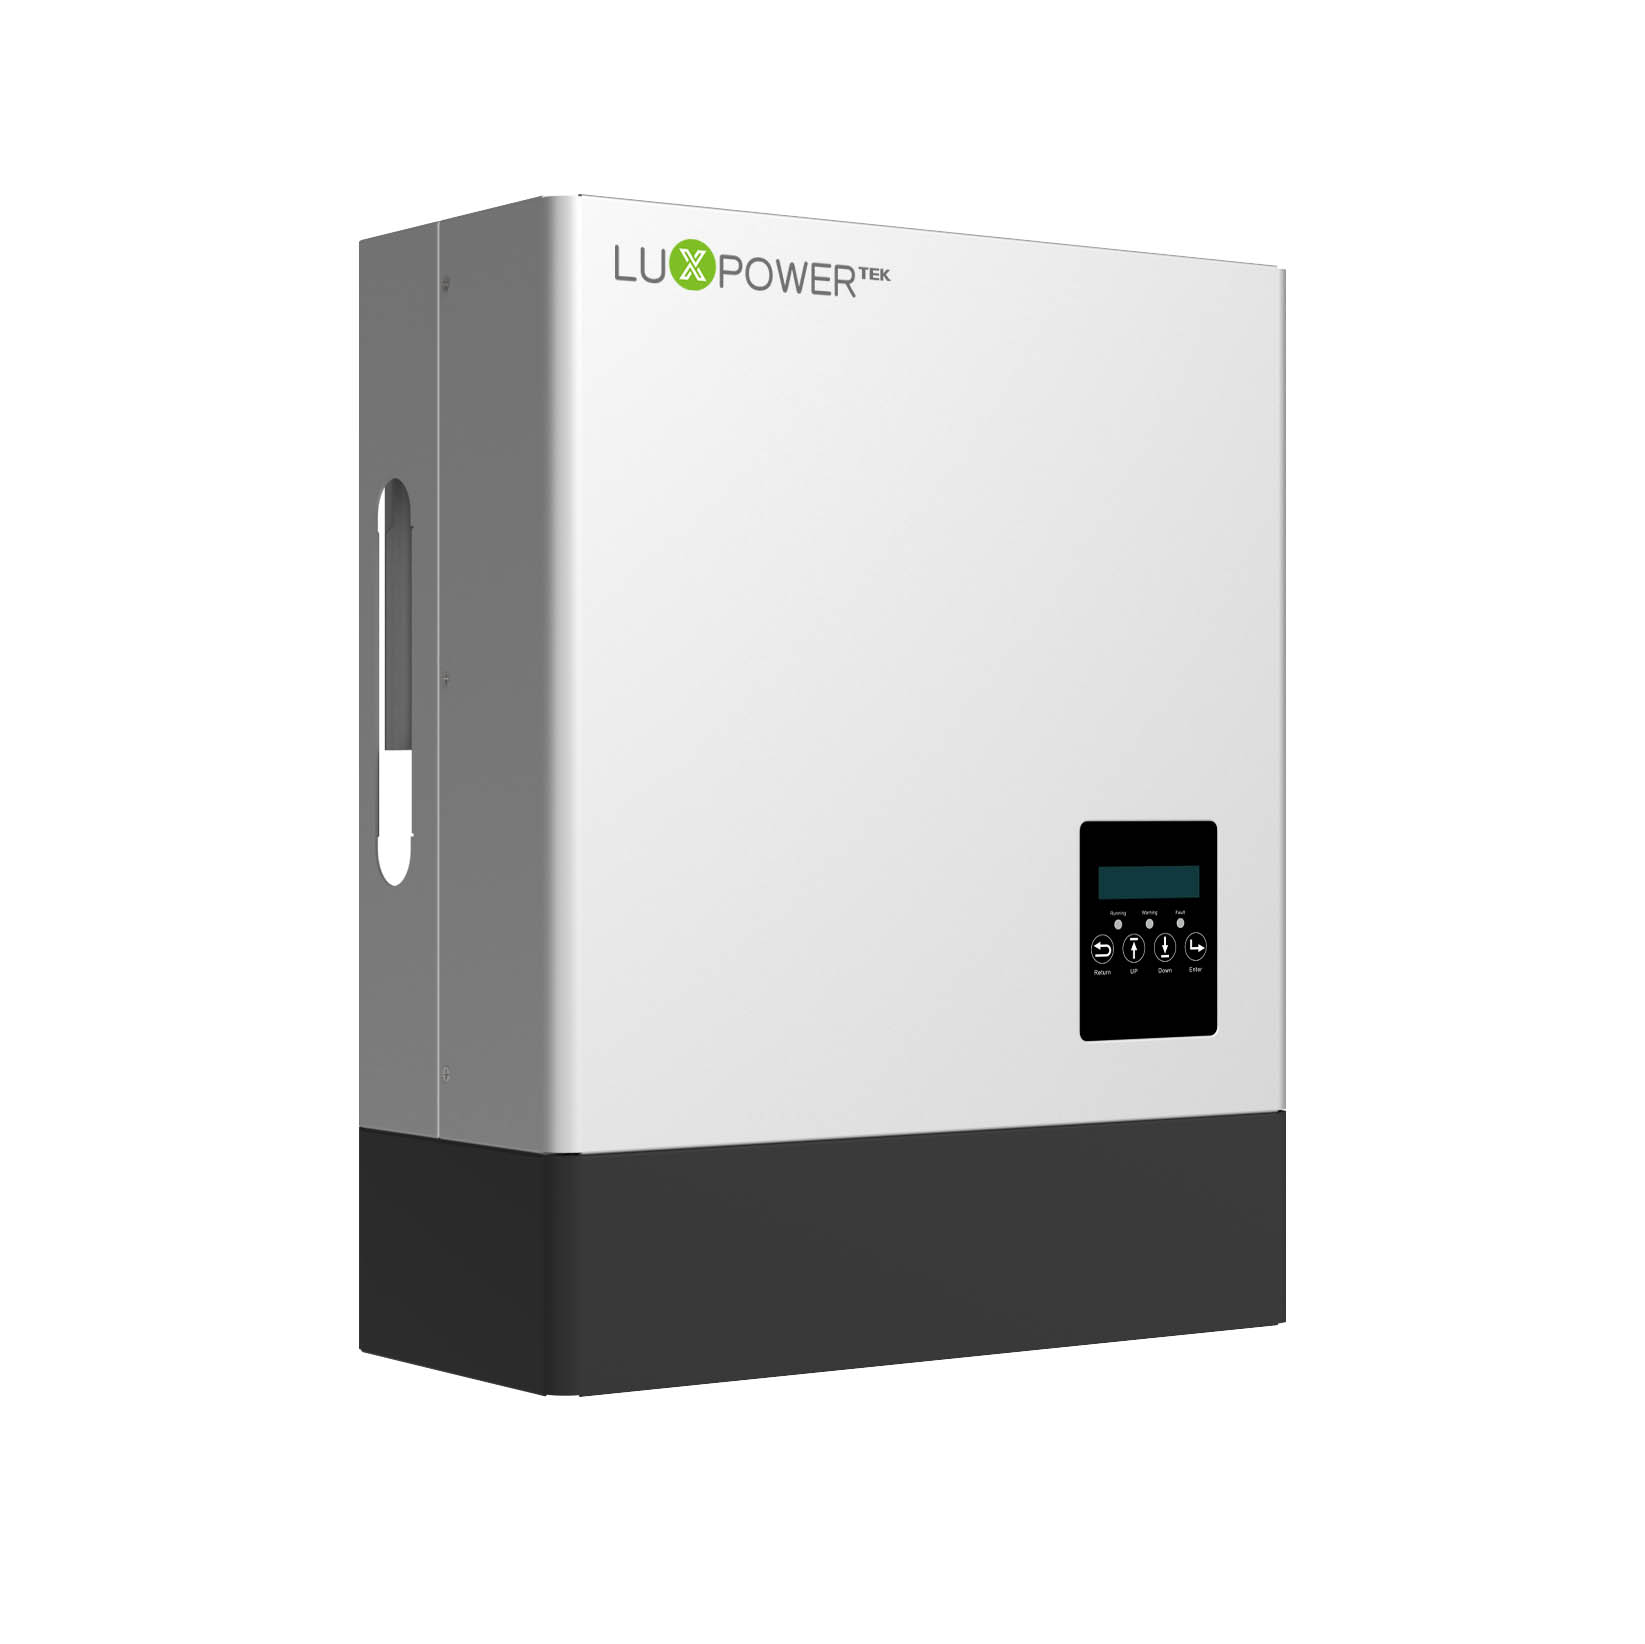 Hot New Products On/Off Grid Inverter - Hybrid-HB – LUX POWER